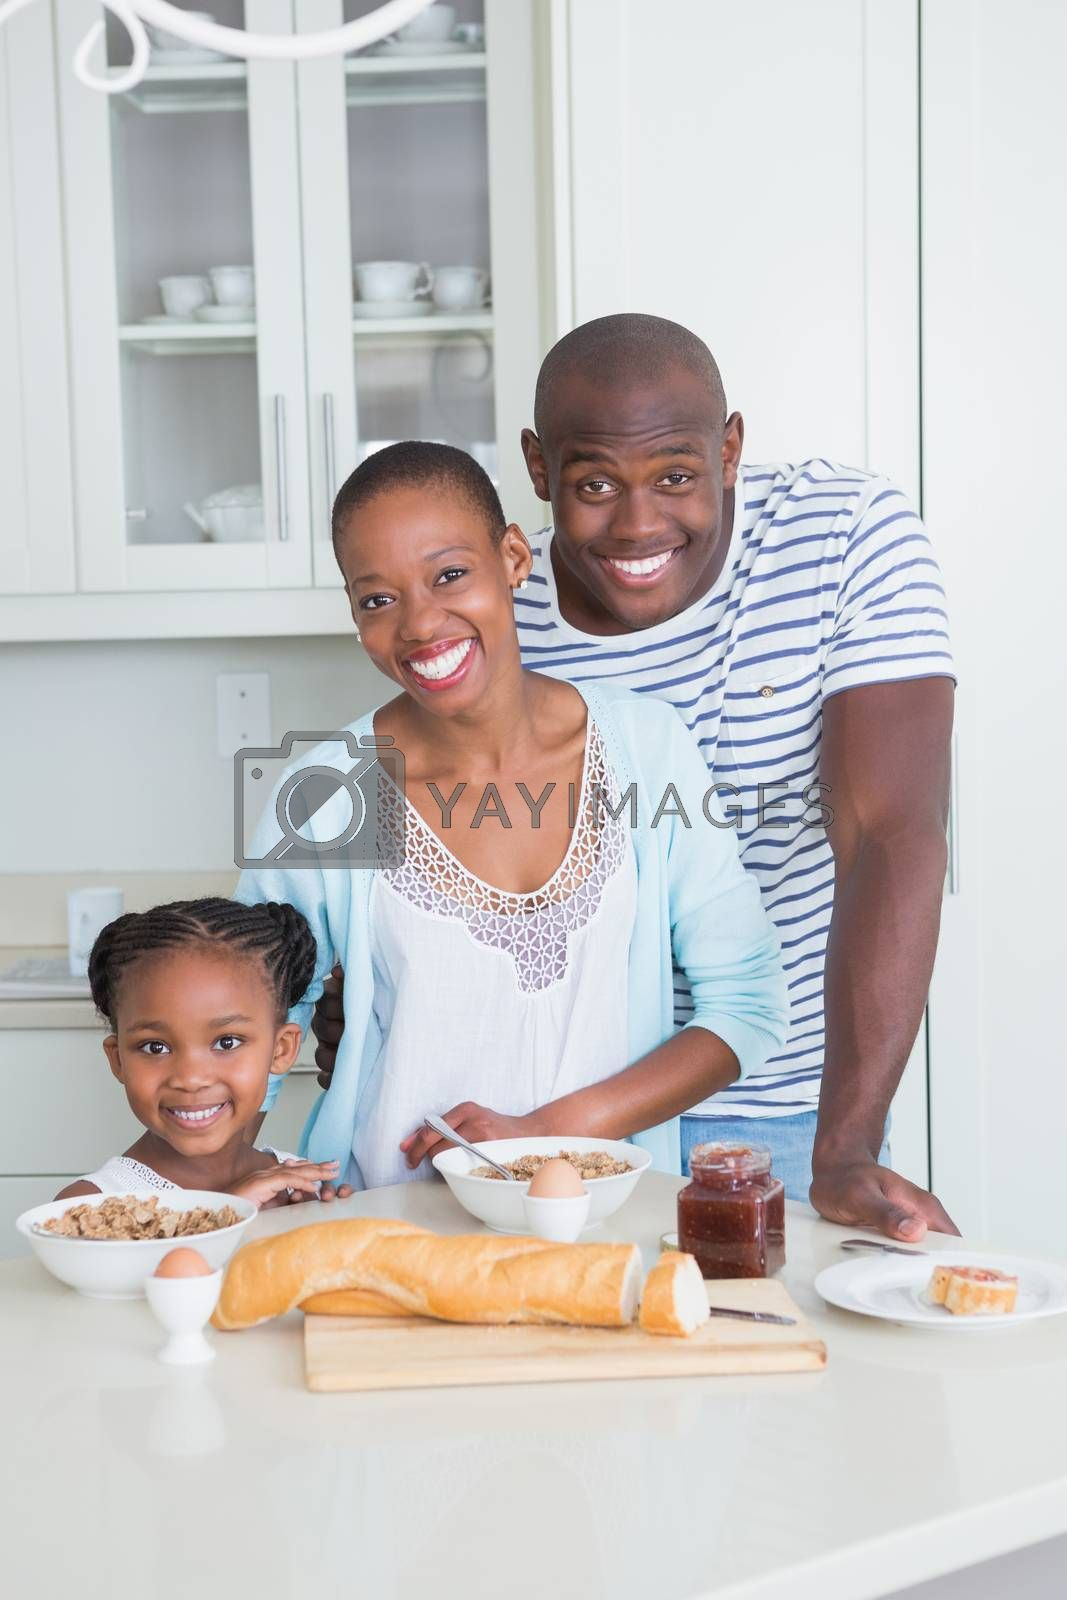 Royalty free image of Portrait of a happy family sitting and taking breakfast by Wavebreakmedia